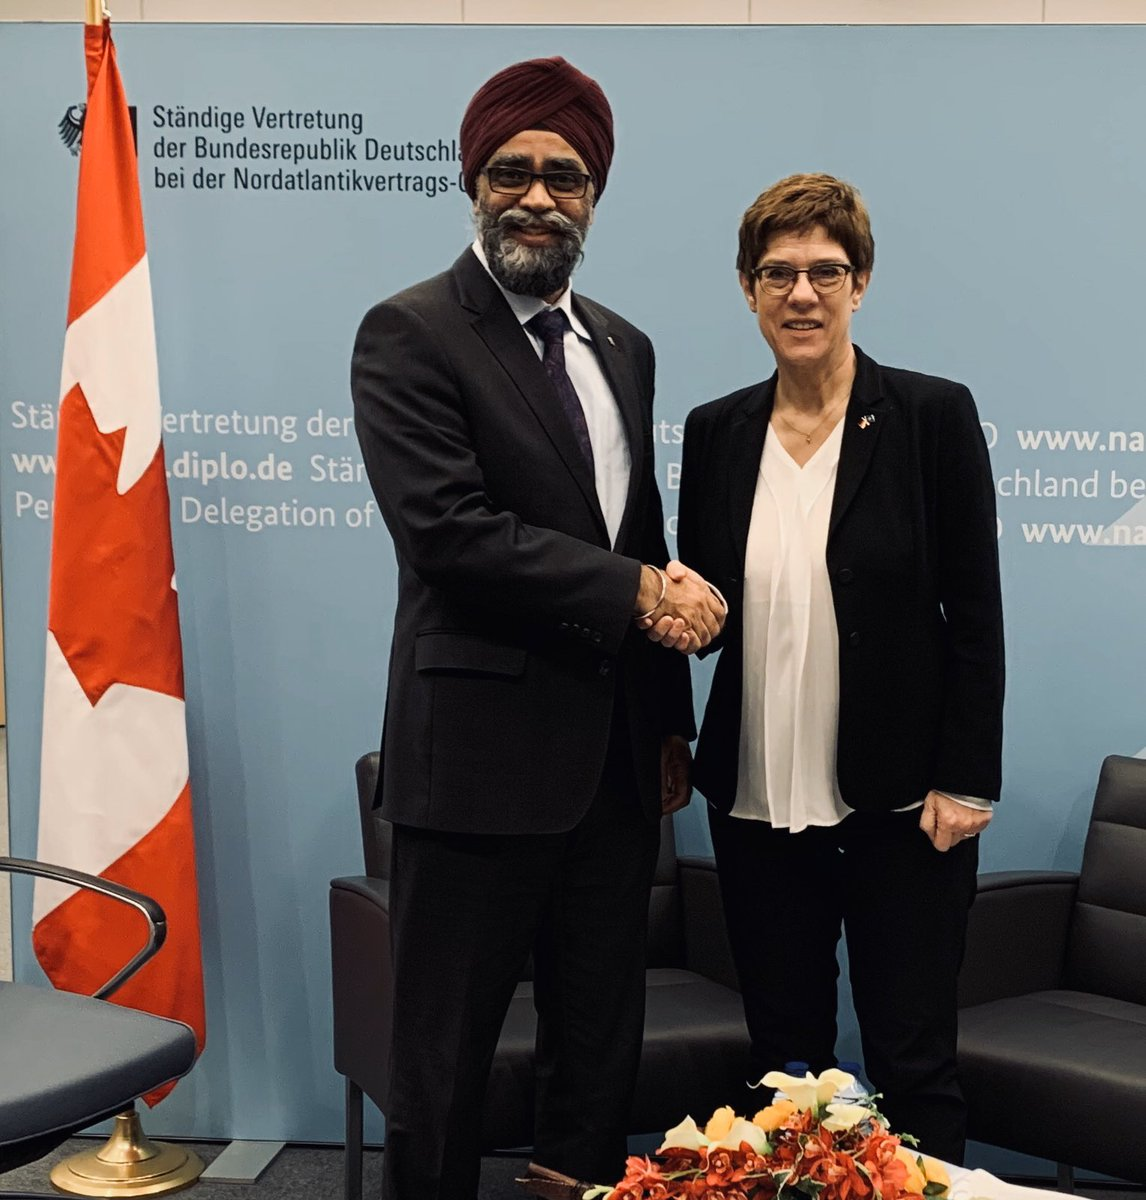 Whether in #Afghanistan or today in #Mali - Canada and Germany work closely together in many regions. A lot to talk about during the meeting with @HarjitSajjan, the Canadian counterpart of Minister of Defence Kramp-Karrenbauer in the margins of the NATO #DefMin.